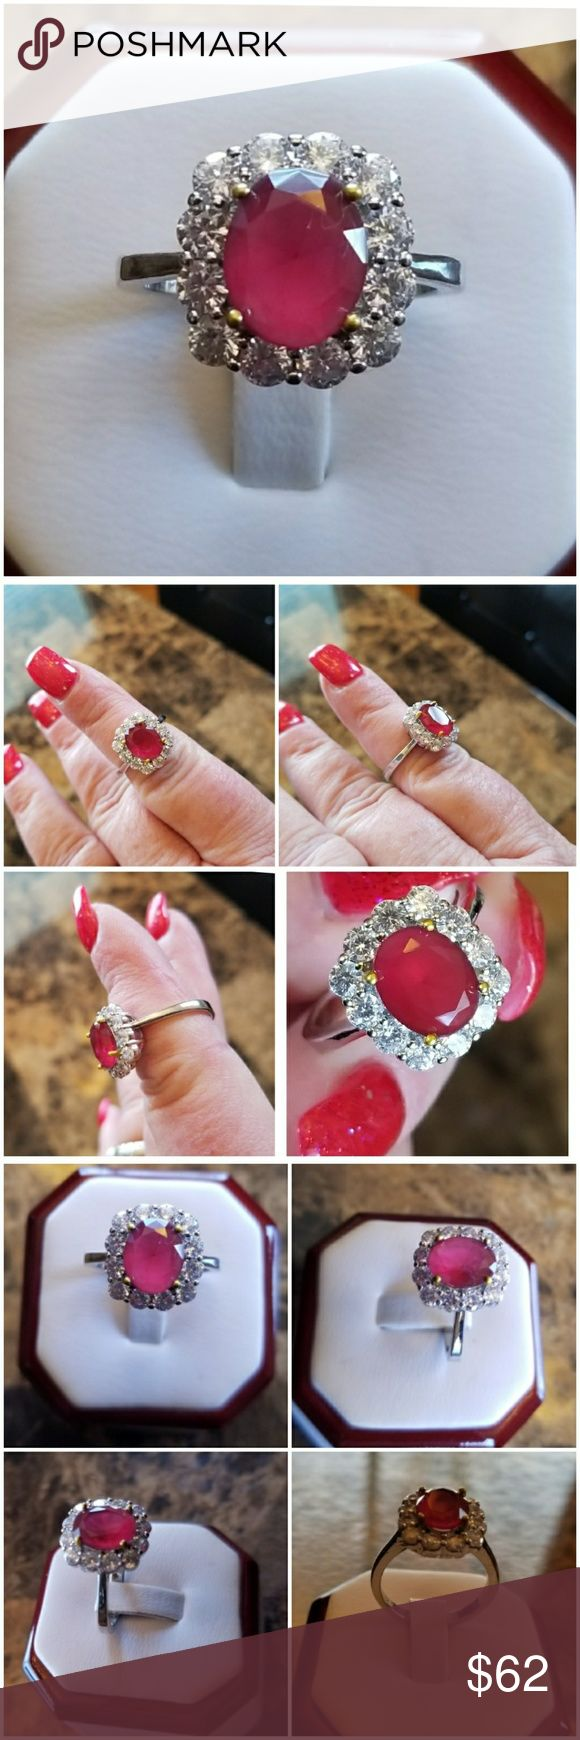 2.76ct Natural Ruby Ring Size 6 & 8 HOLD FOR JENNIFER Gorgeous & Elegant Natural Ruby surrounded by multiple Sparkling White Sapphires!  HOT!  Set in 925 stamped Solid Sterling Silver. Please see all pictures for more detail and measurement. Brand New. Never Worn. Wholesale Prices Always Jewelry Rings